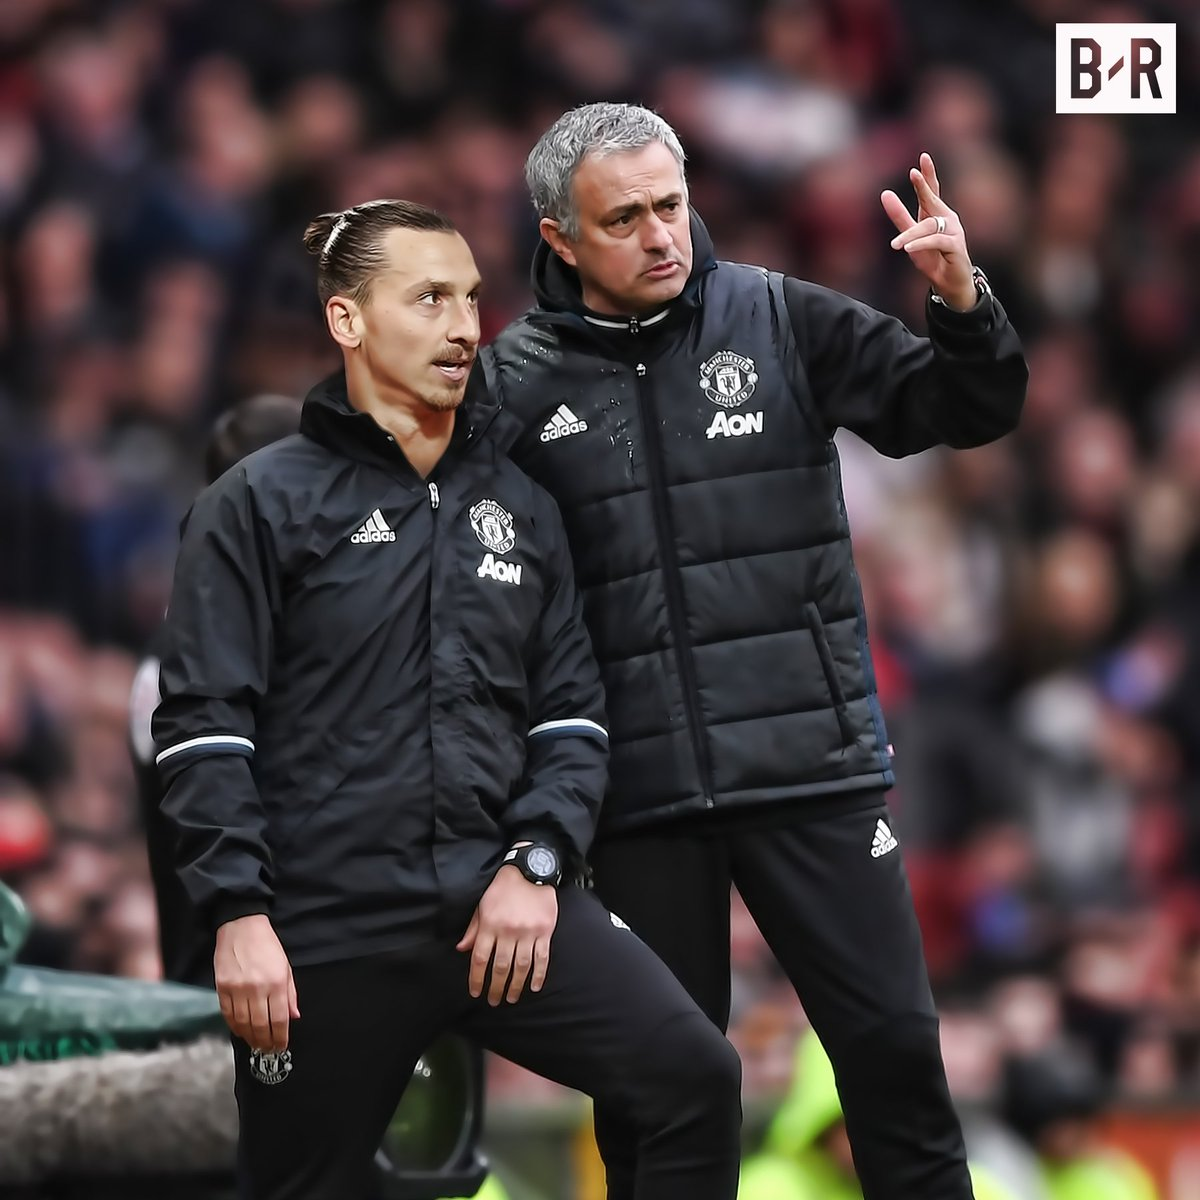 Manchester United will reportedly offer Zlatan Ibrahimovic a new deal… with a view to a future coaching role 👀 https://t.co/UuHo1RWfcm